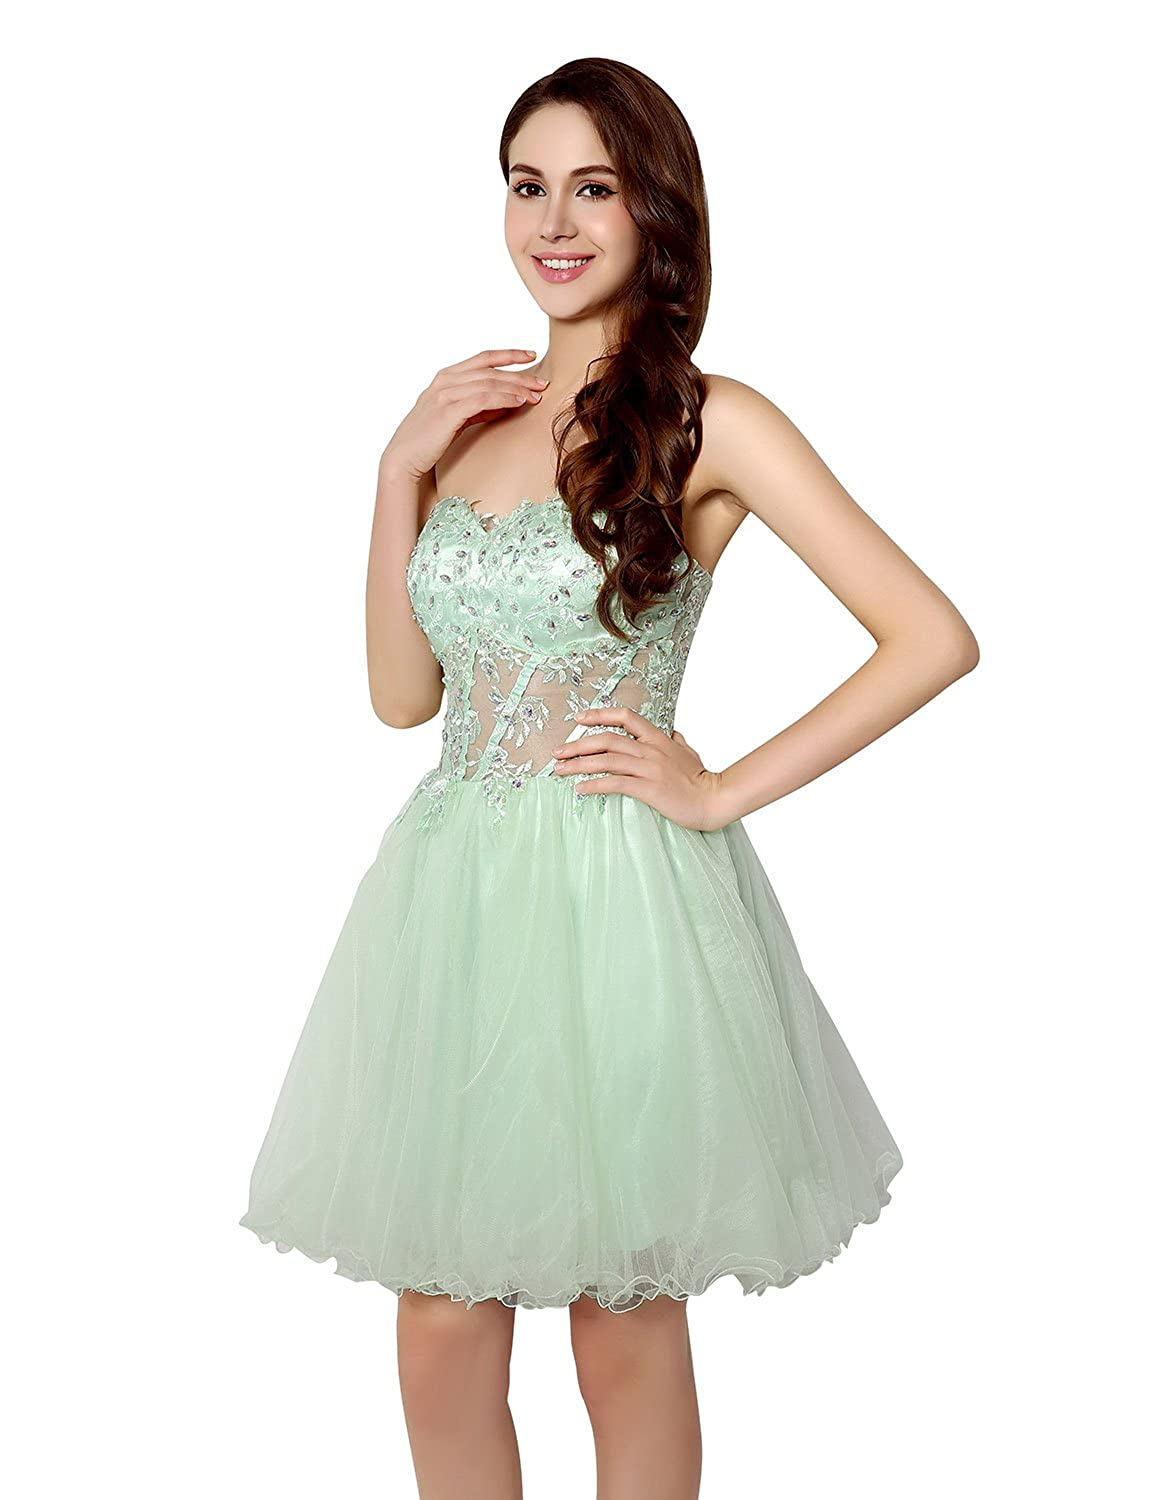 Sarahbridal Women's Sexy Short Homecoming Prom Dresses Strapless Crystals Party Gowns SSD227